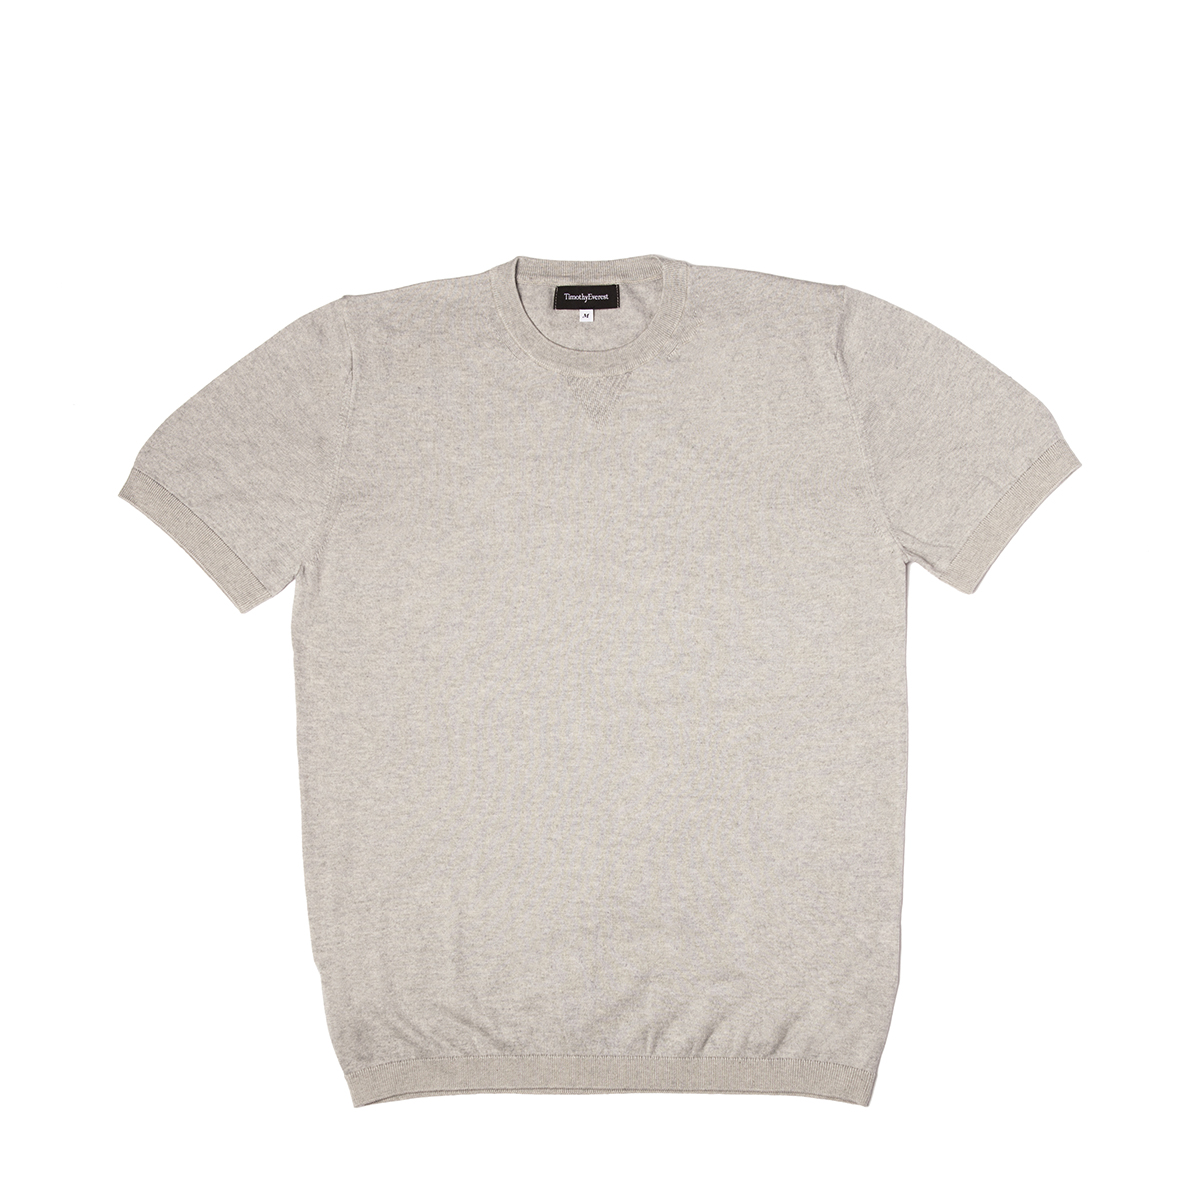 Timothy Everest Grey Lightweight Cotton/Cashmere Knitted Tee